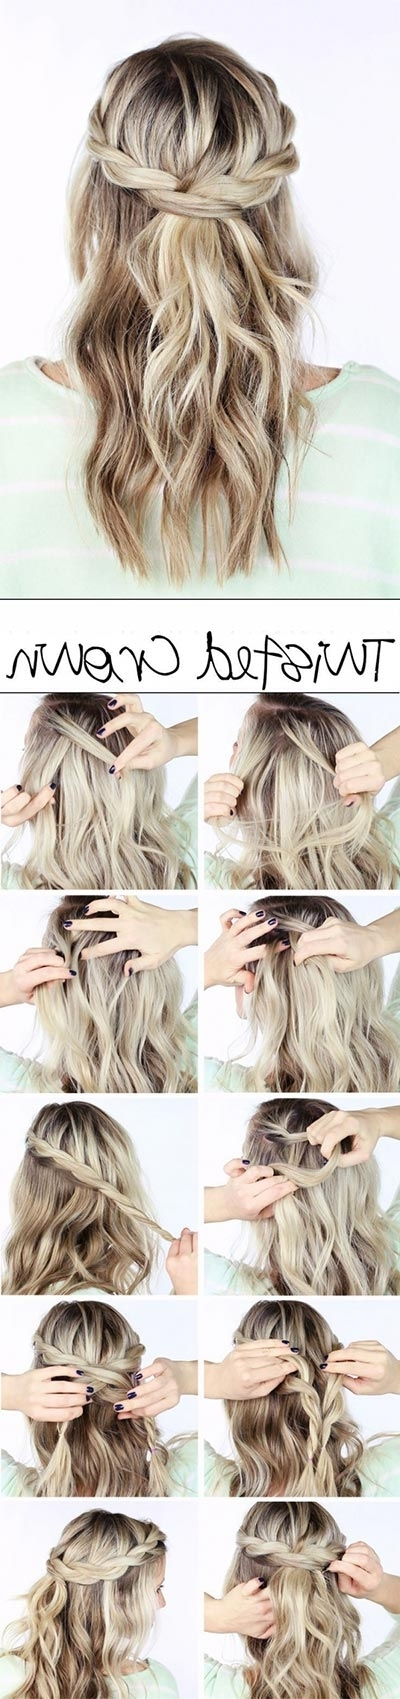 30 Most Flattering Half Up Hairstyle Tutorials To Rock Any Event With Regard To Latest Diy Half Updo Hairstyles For Long Hair (View 10 of 15)